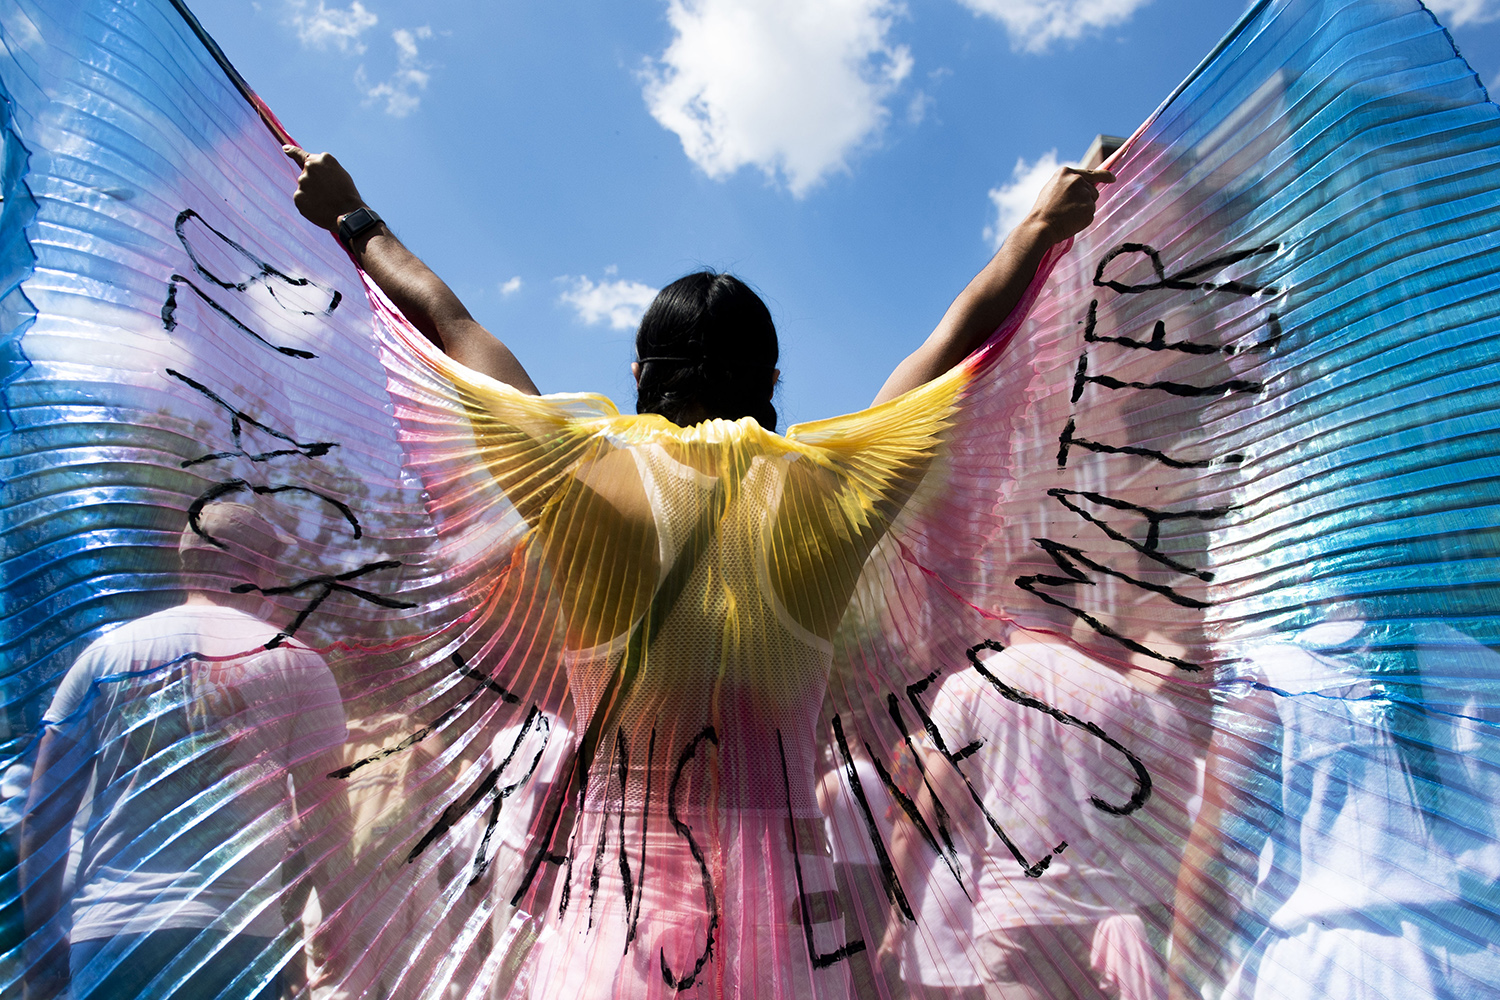 """A protester displays """"Black Trans Lives Matter"""" wings while marching in the Brooklyn borough of New York City on June 14. Protests have continued all across the country and around the world following the death of George Floyd at the hands of Minneapolis police last month. Michael Noble Jr./Getty Images"""